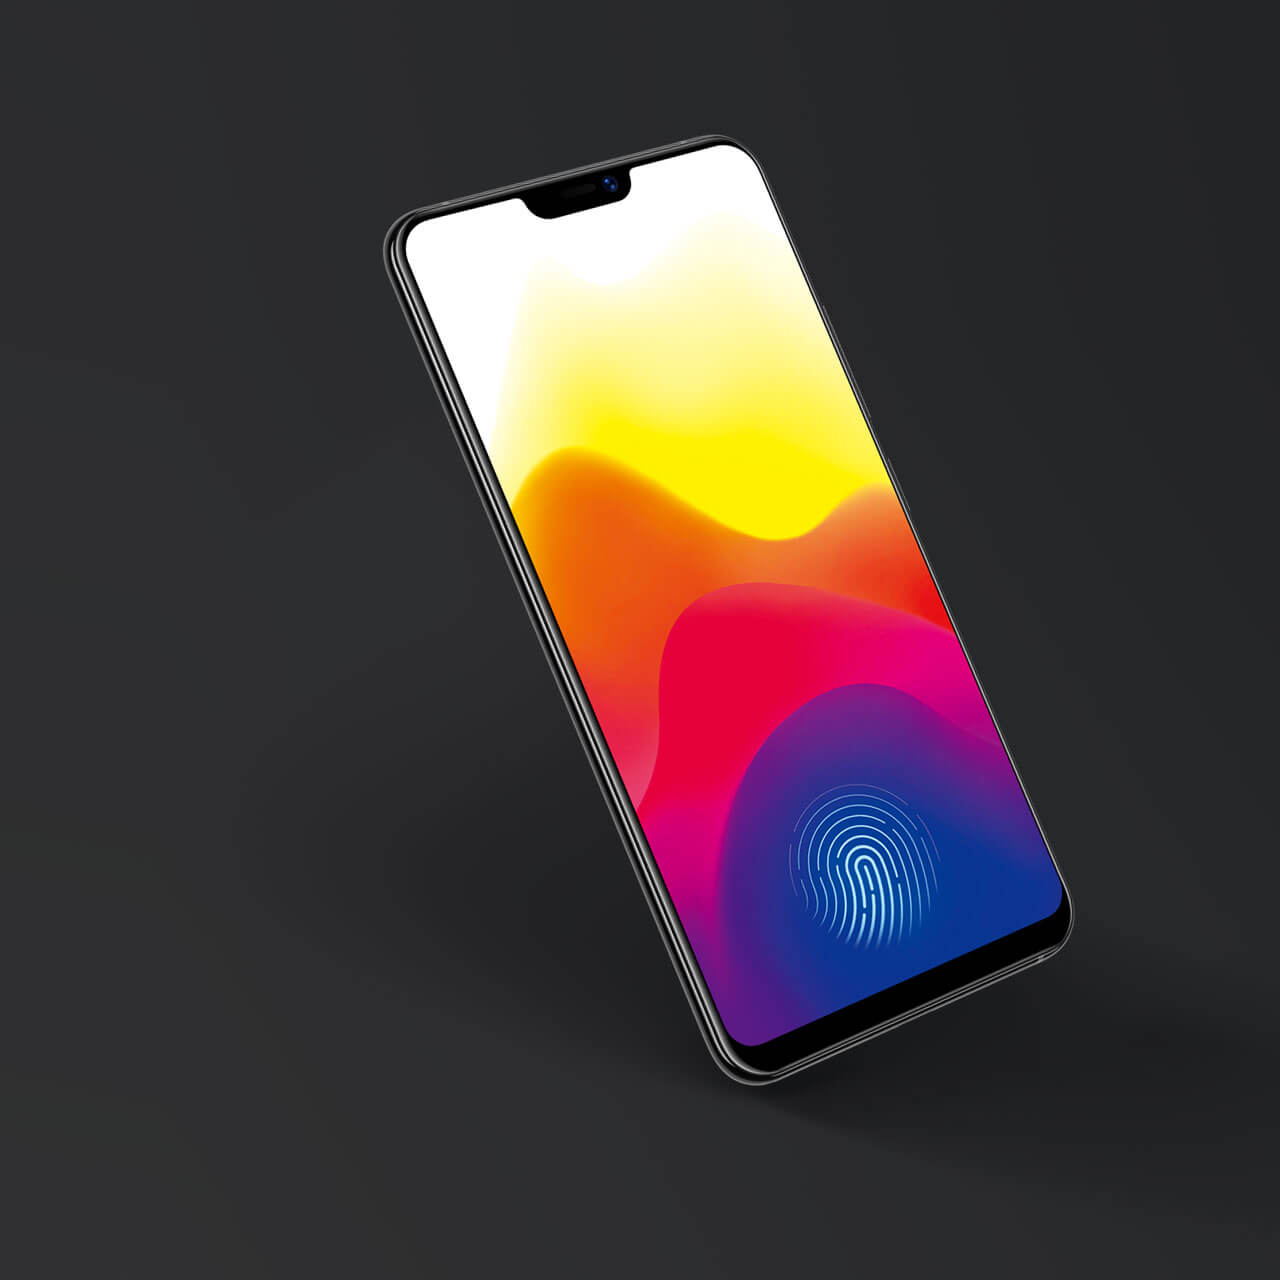 Vivo X21 fingerprint sensor